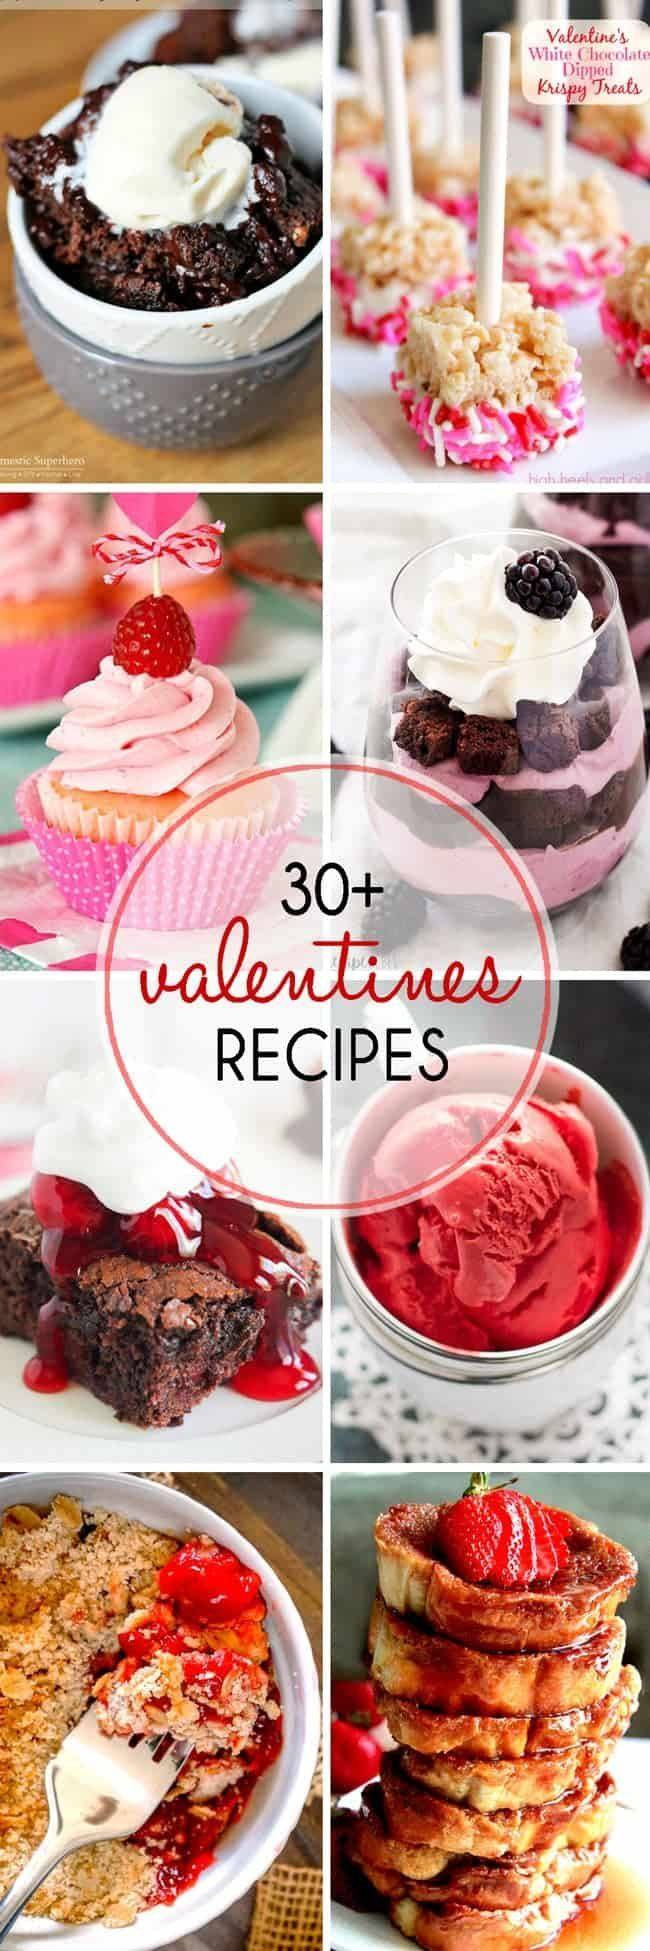 30 Plus Valentines Day Recipes: Over thirty fun sweets and treat ideas for a romantic dinner or a class Valentine's Day class party. #valentinesday